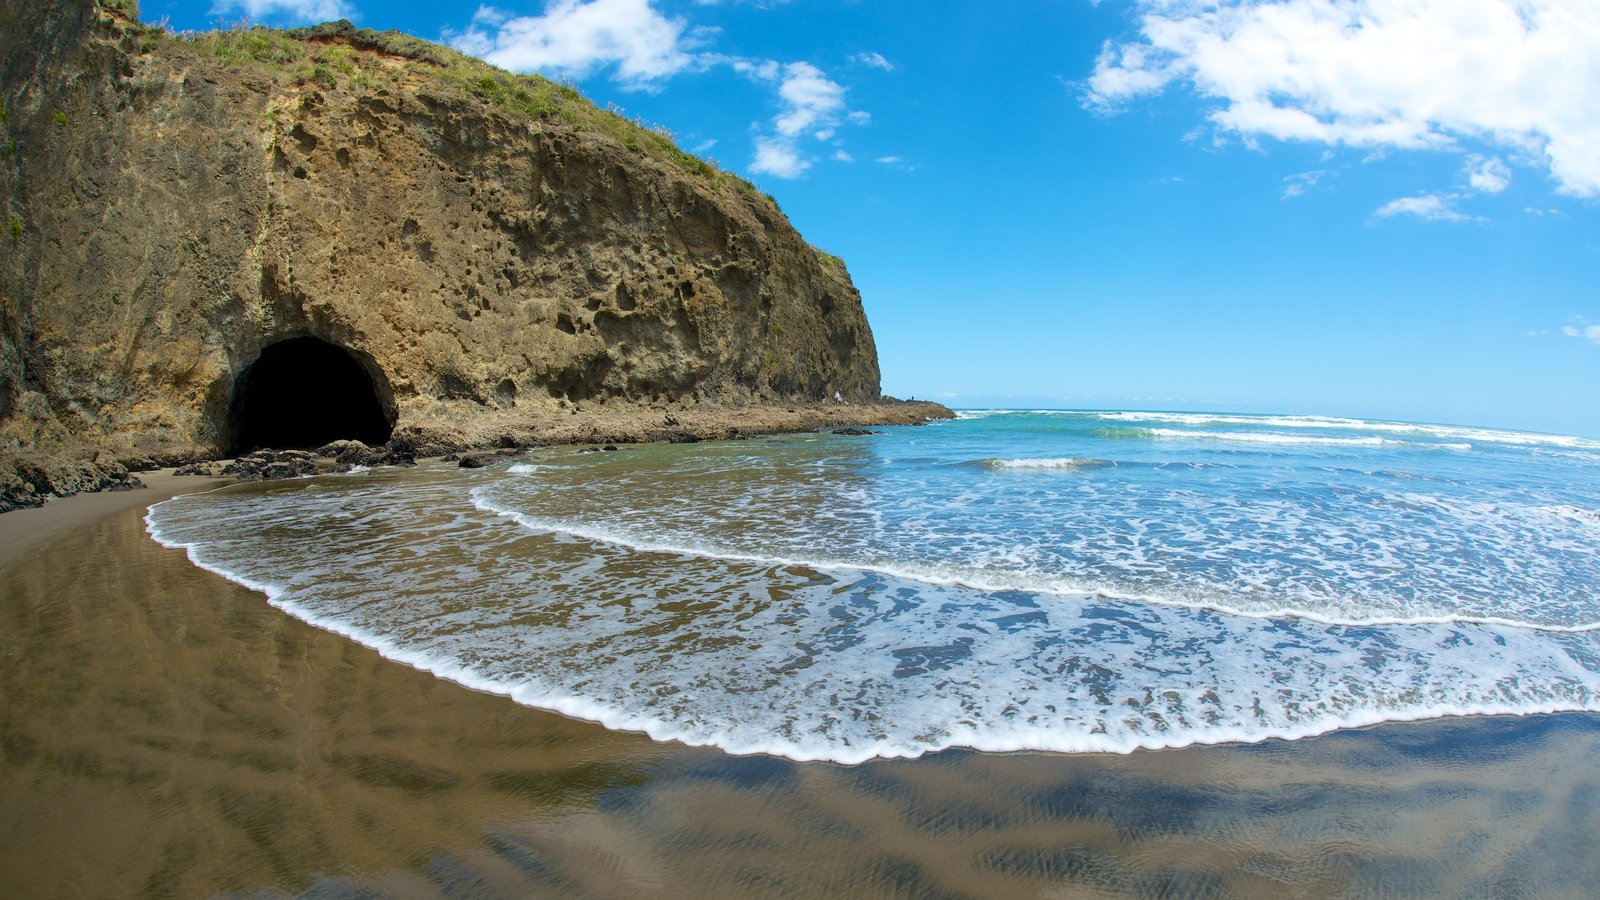 Bethells Beach featuring landscape views and rocky coastline